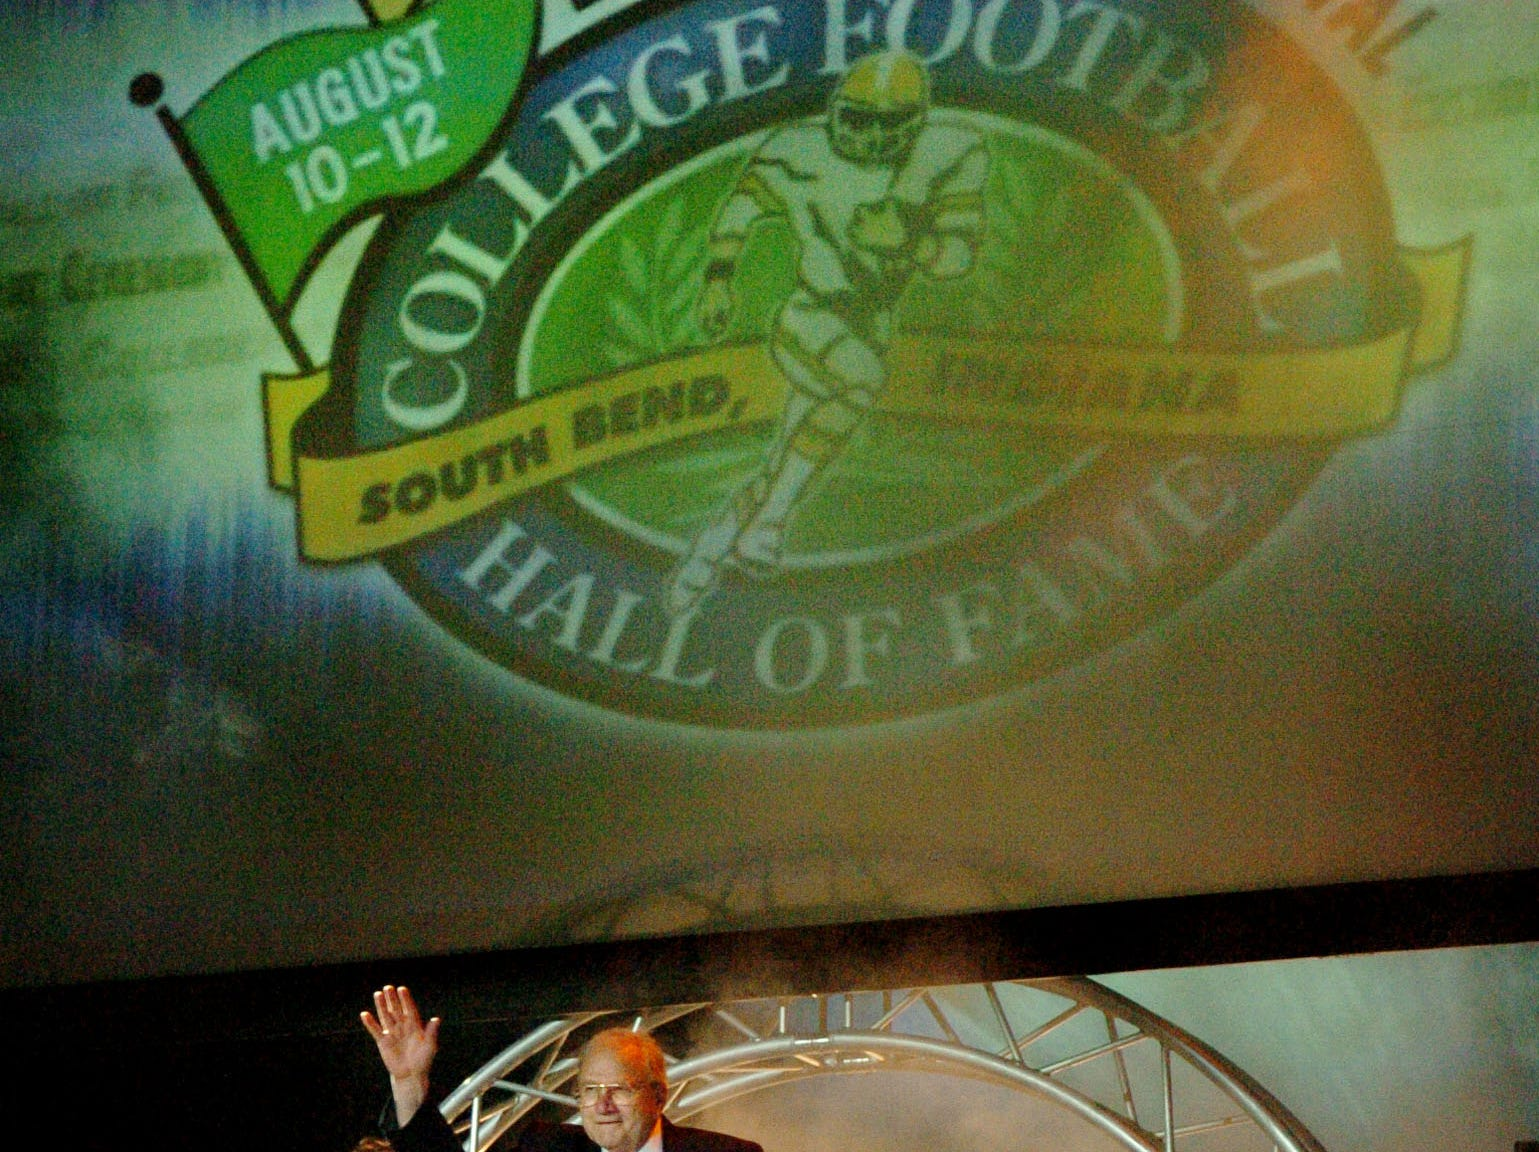 St. John?s football coach John Gagliardi is introduced as the winningest coach in college football history during the enshrinement ceremony for the College Football Hall of Fame Saturday night in South Bend, Ind.